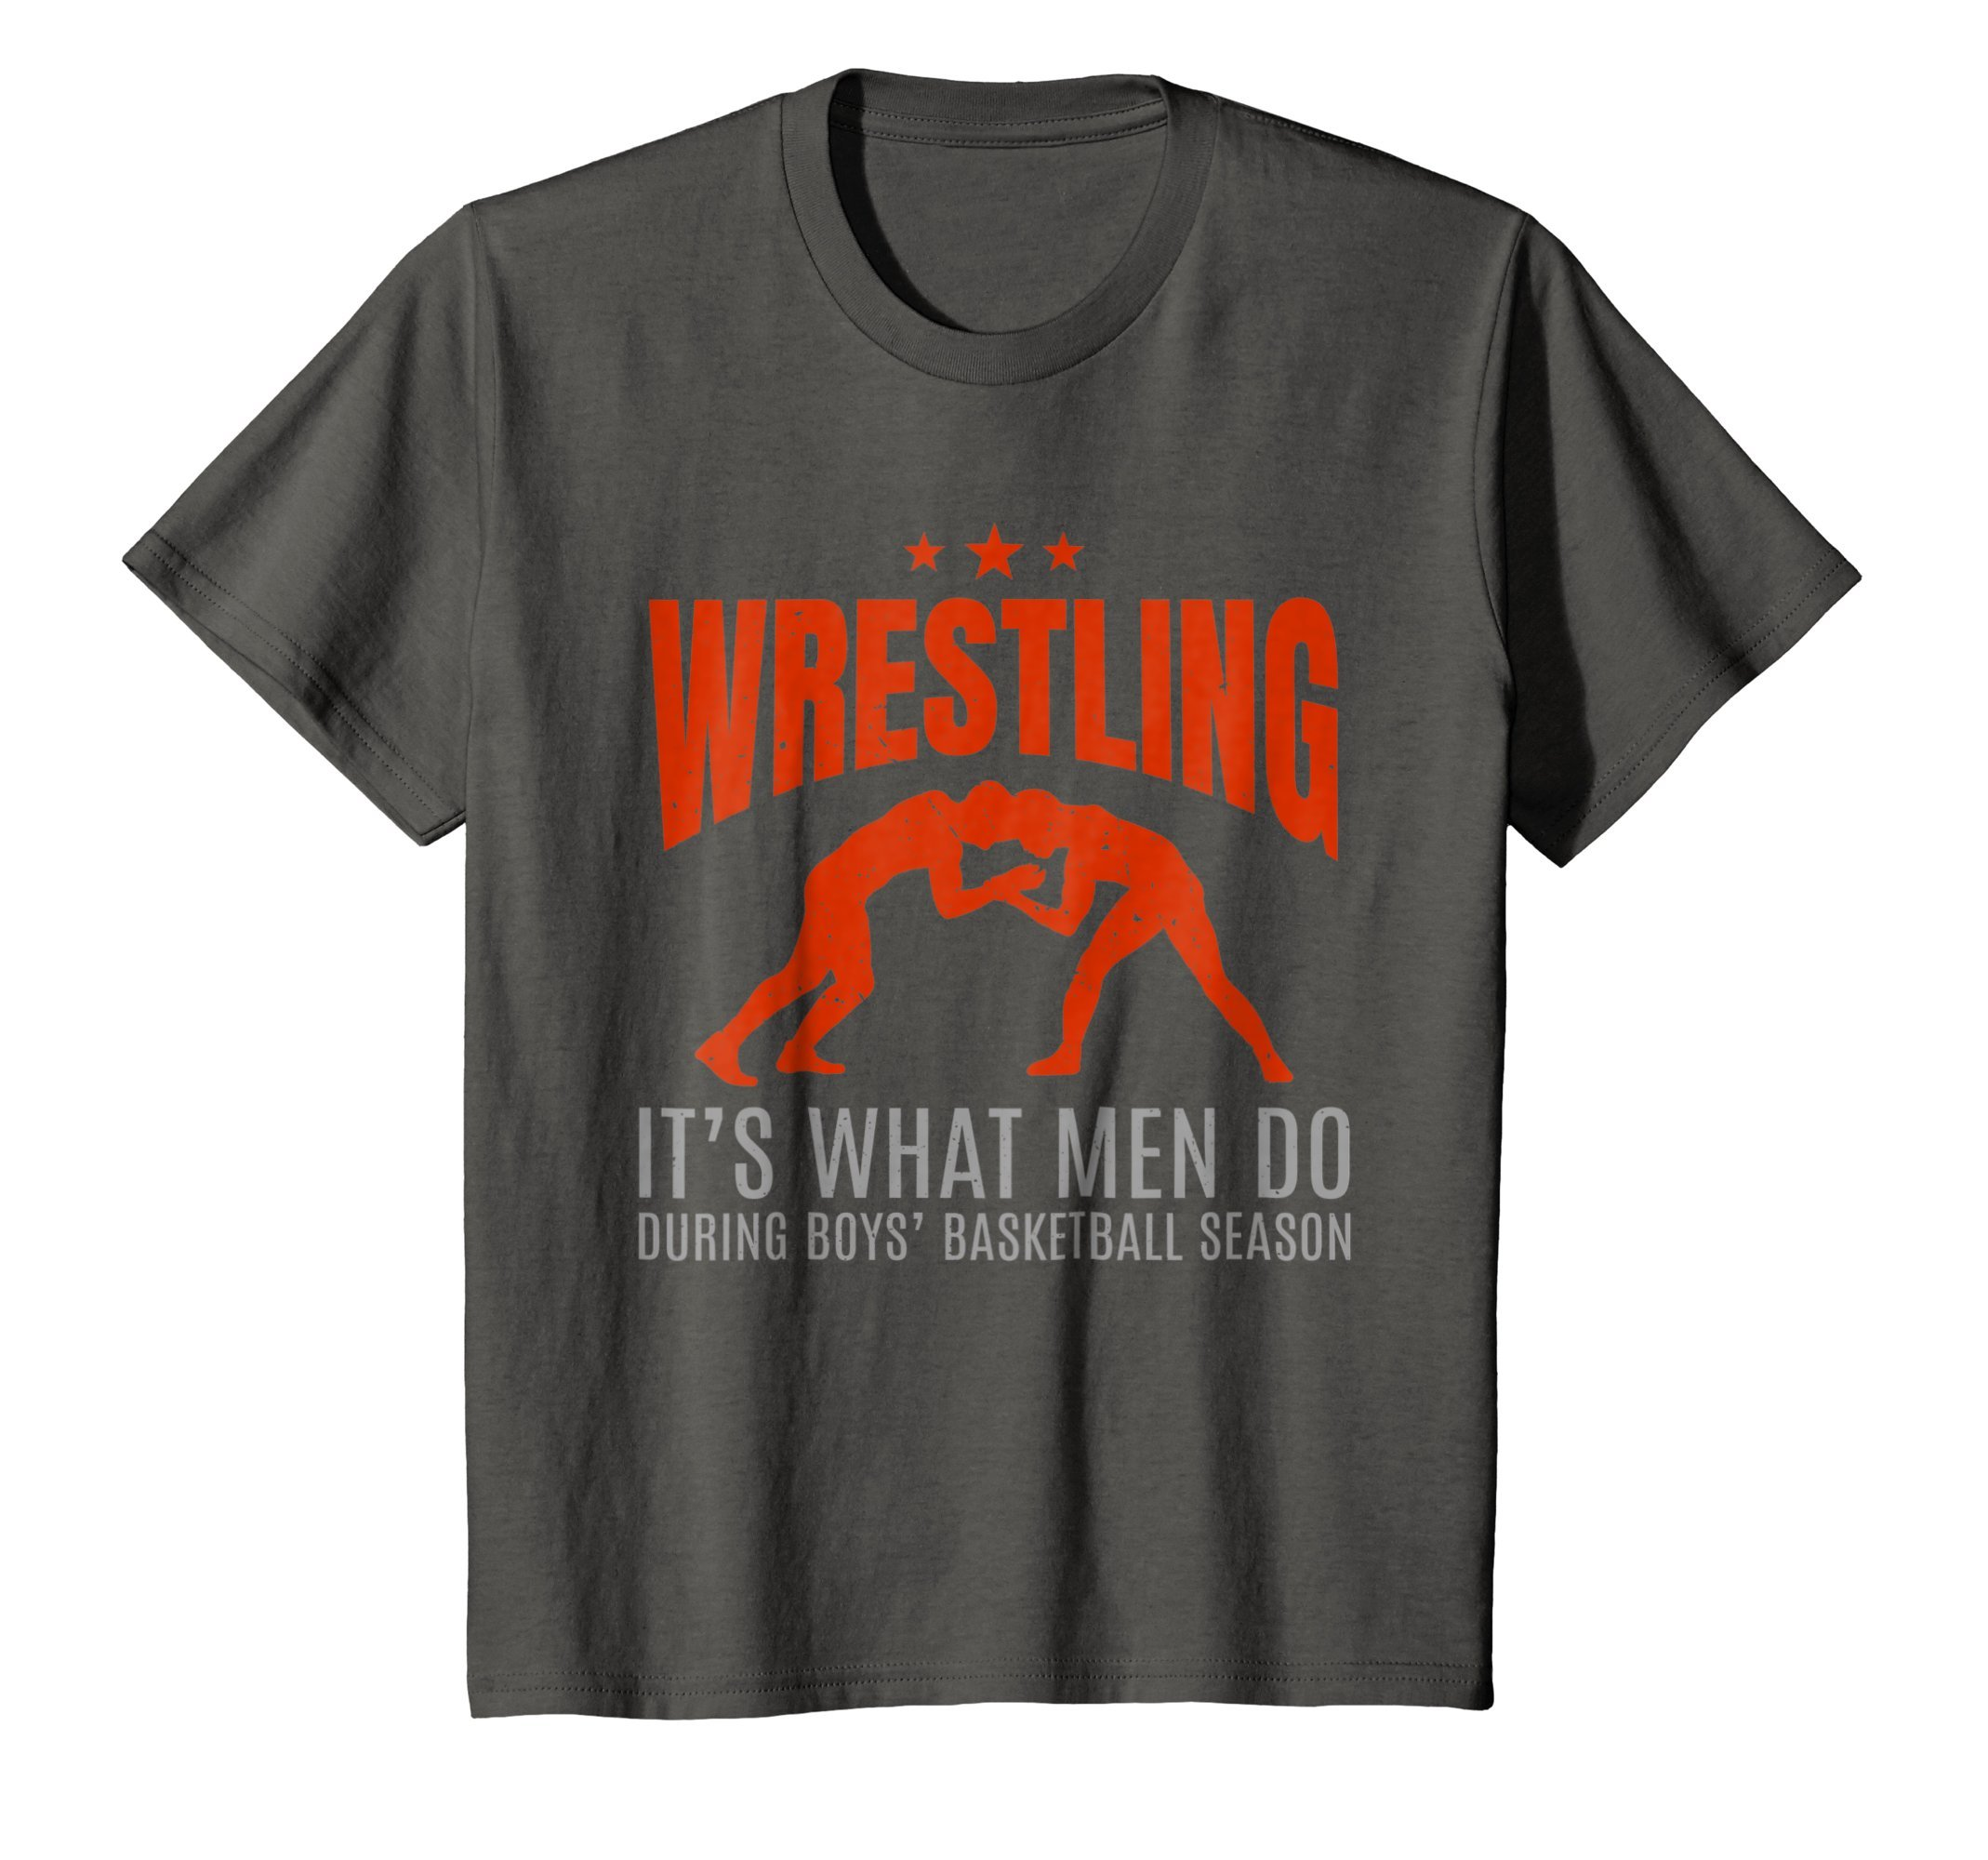 Kids Wrestling Attire Wear Tee Shirt Gift for Wrestler Boys 8 Asphalt by Funny Wrestling T-Shirts Gifts and Apparel